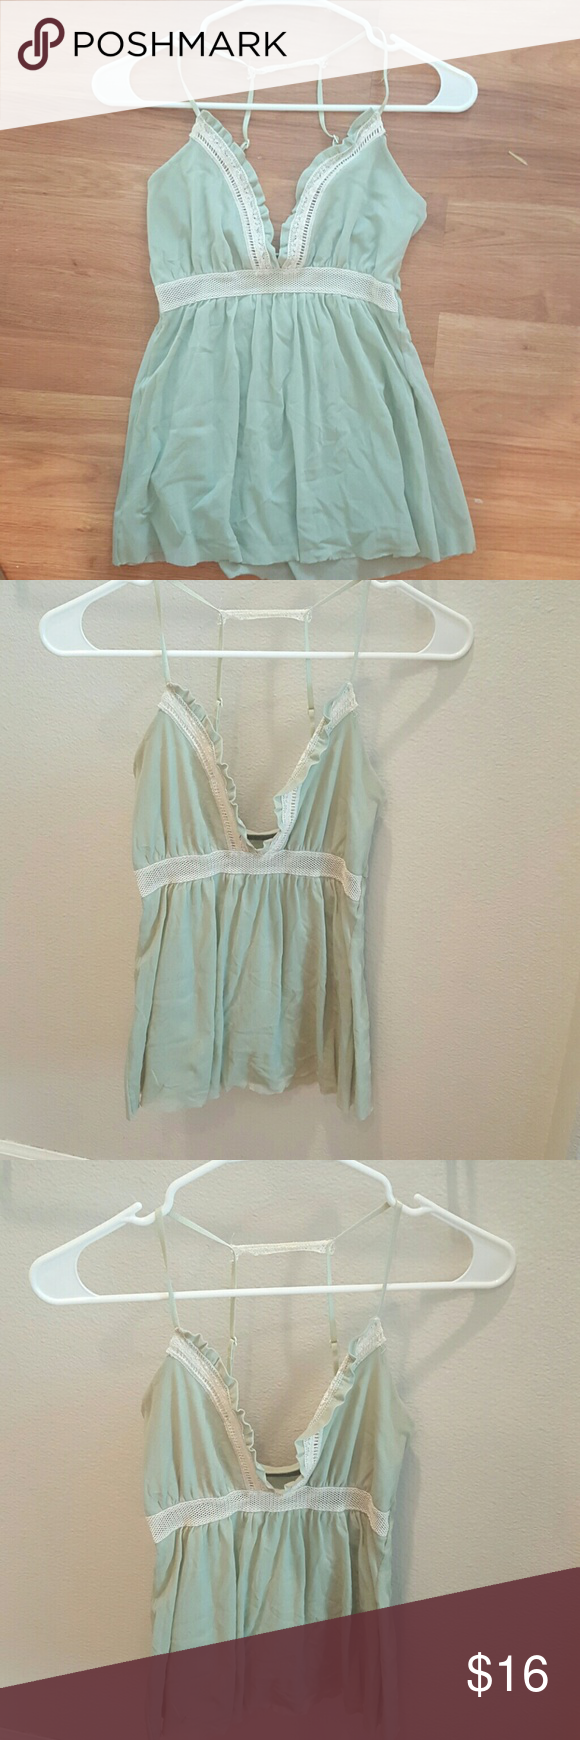 Mint green tank top Love this tank , fits great, love the back strap detail Tops Tank Tops